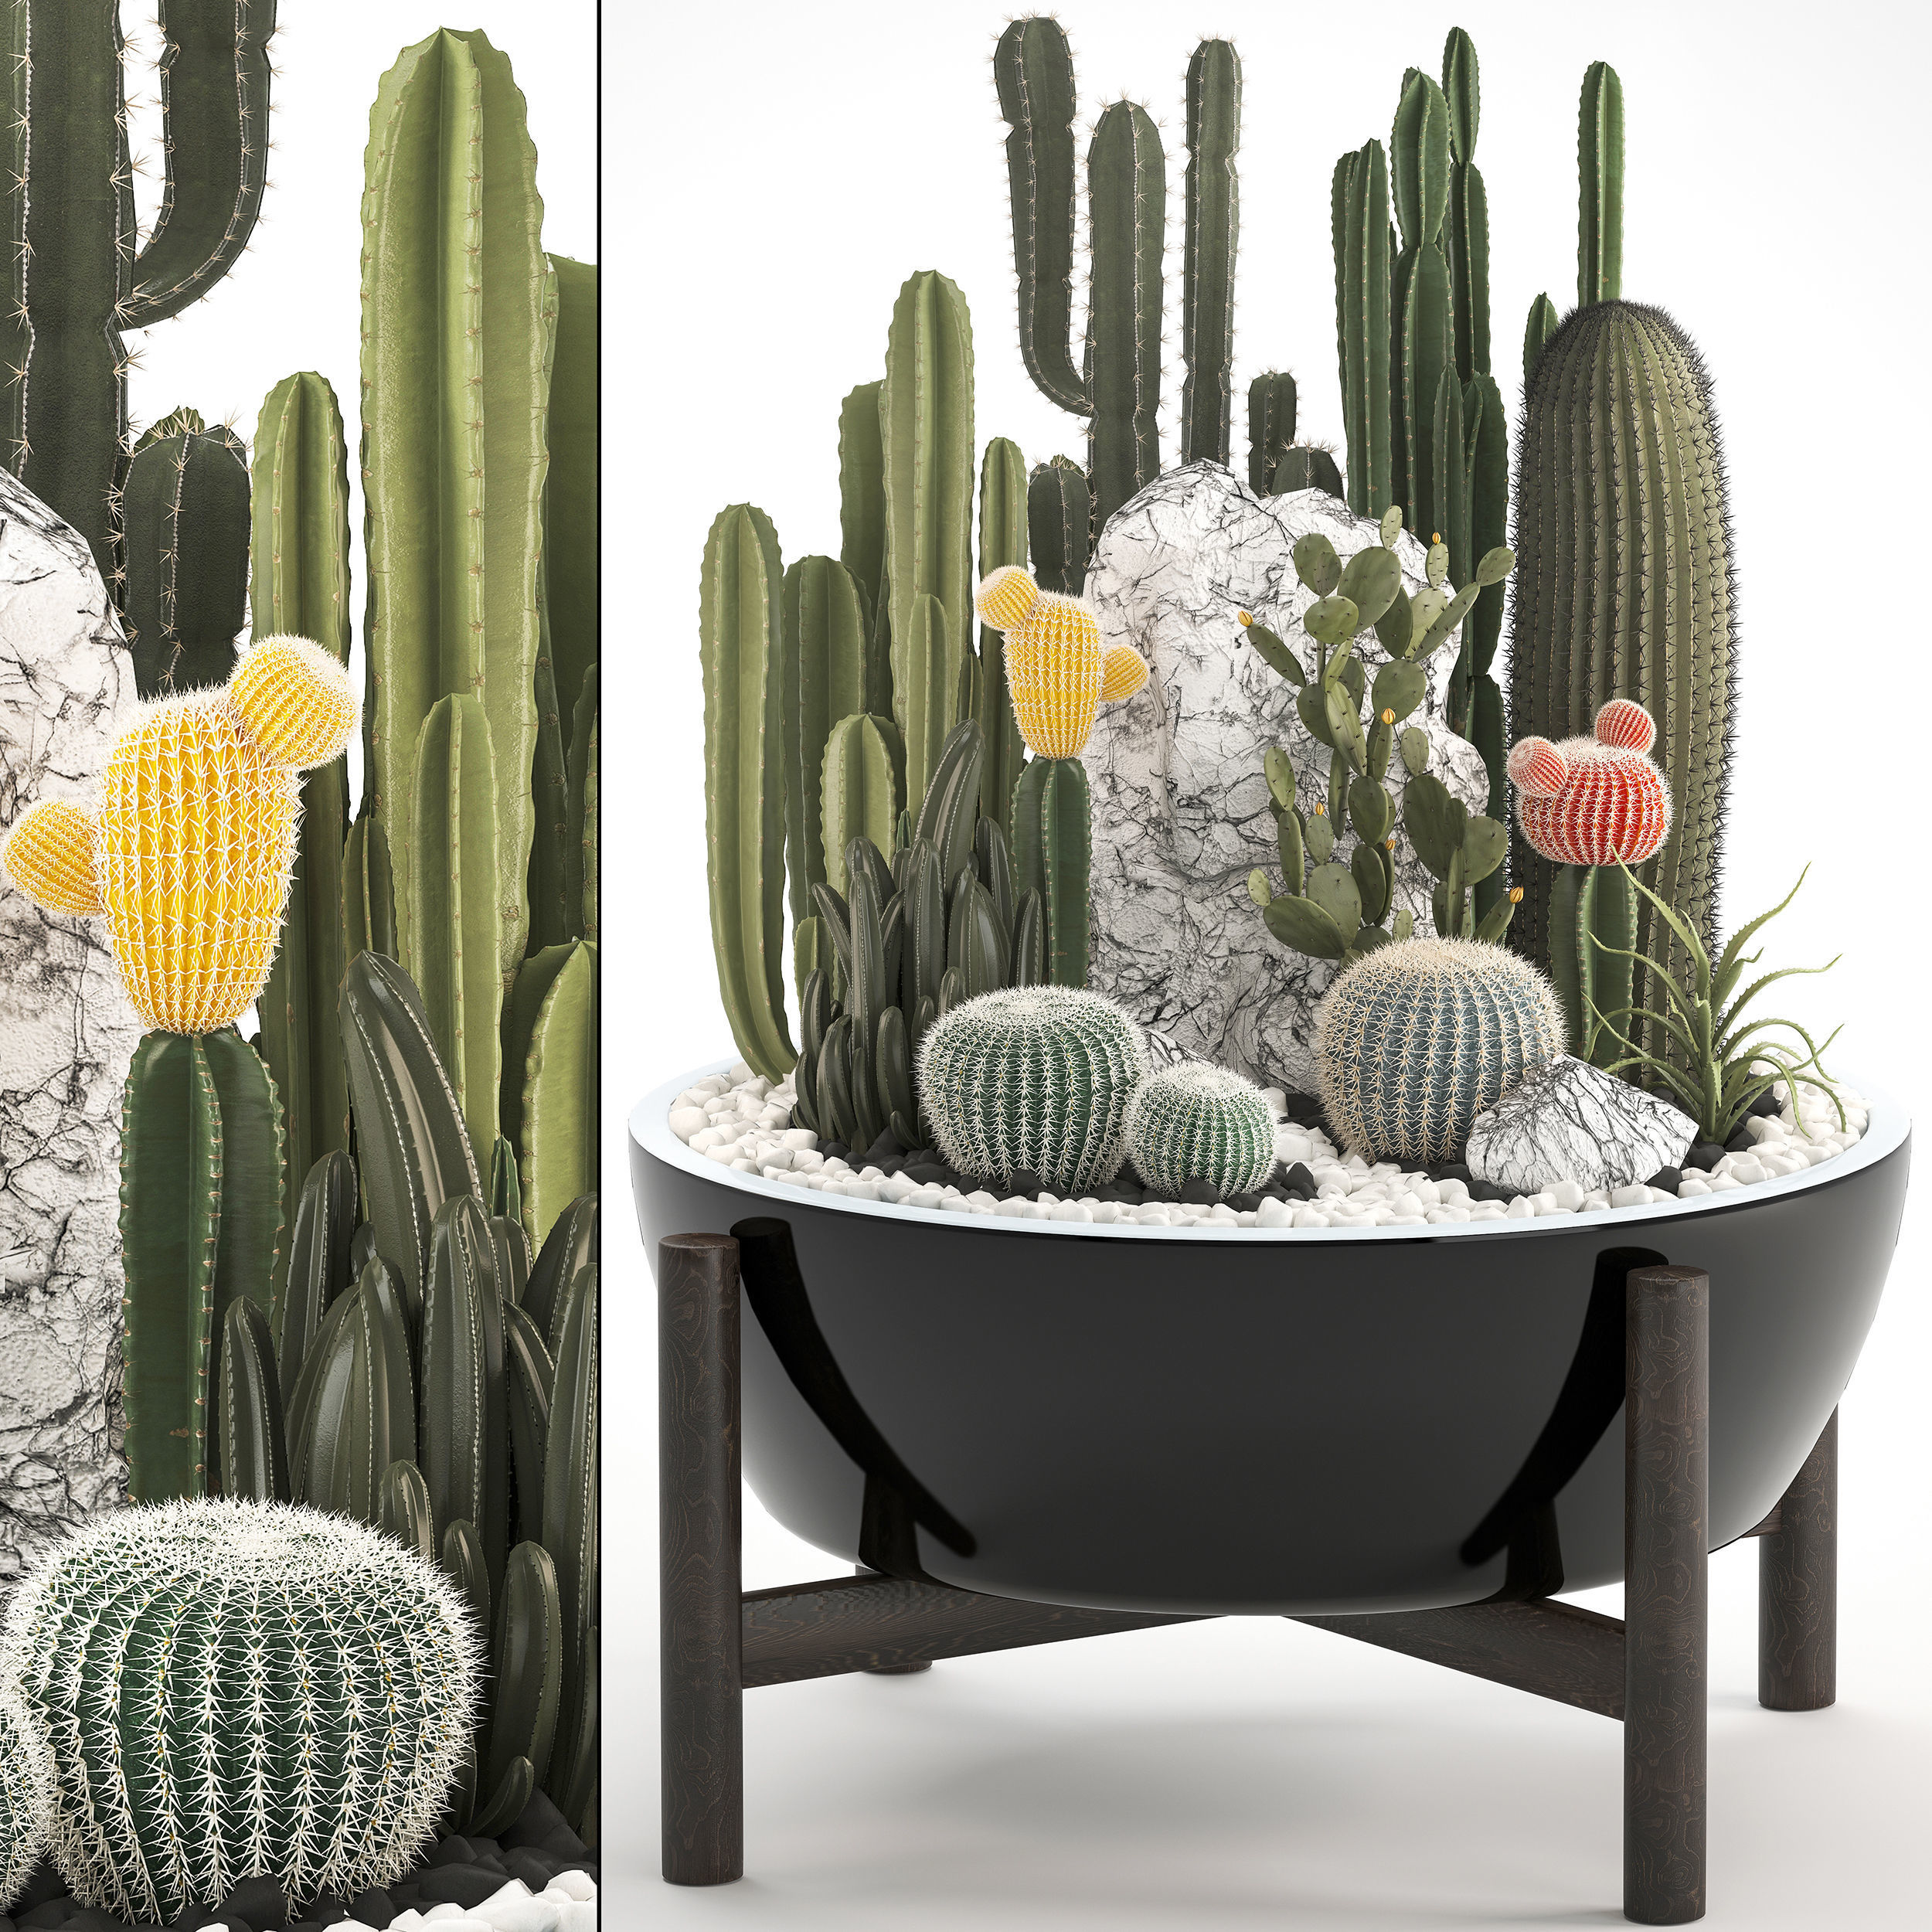 Collection of Exotic Cactus Plants 6